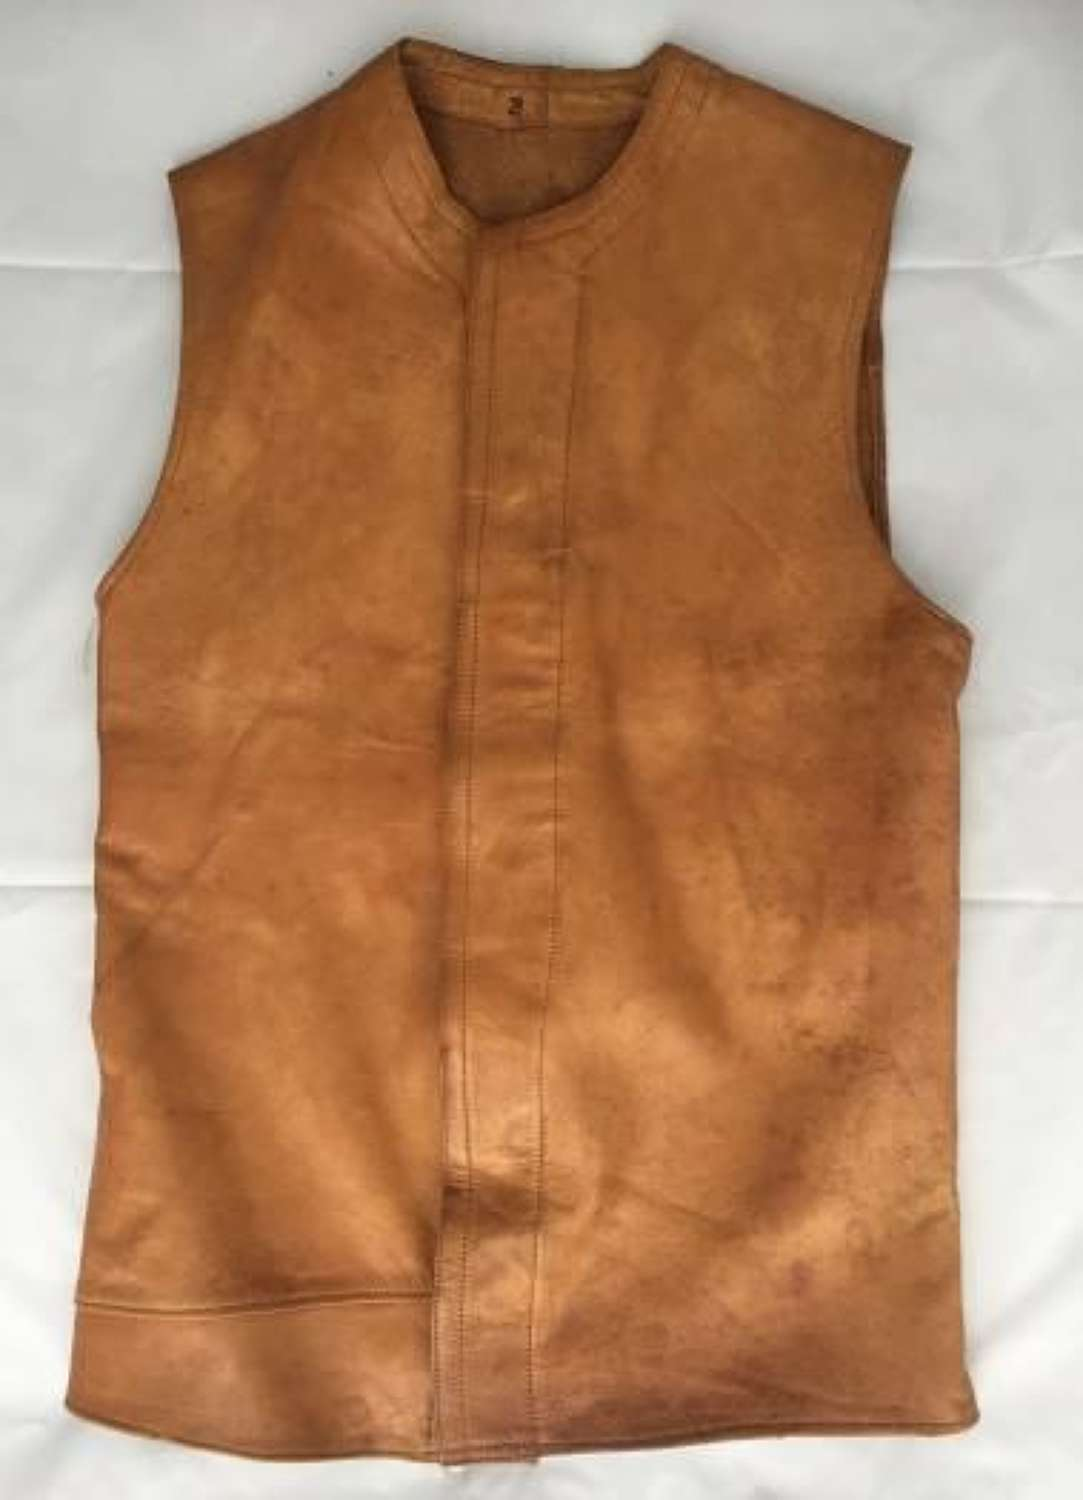 Rare Indian Made British Army Leather Jerkin